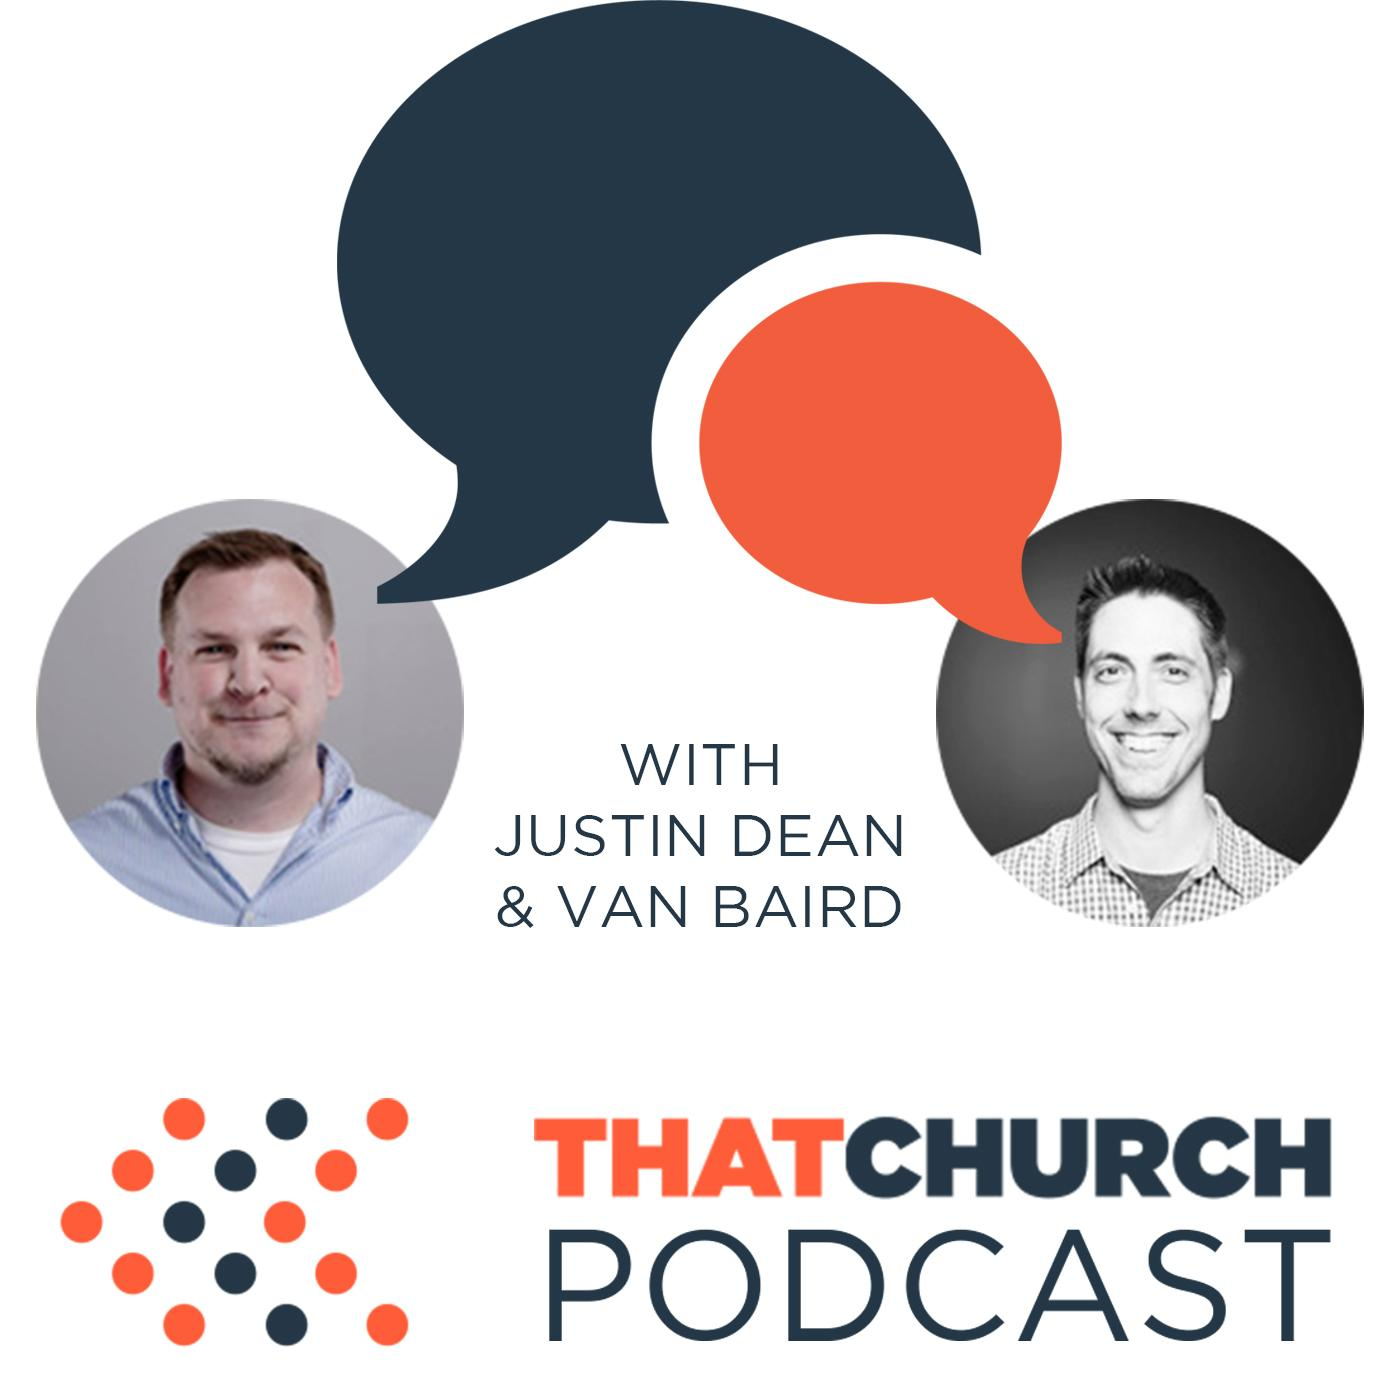 That Church Conference Podcast with Justin Dean and Van Baird